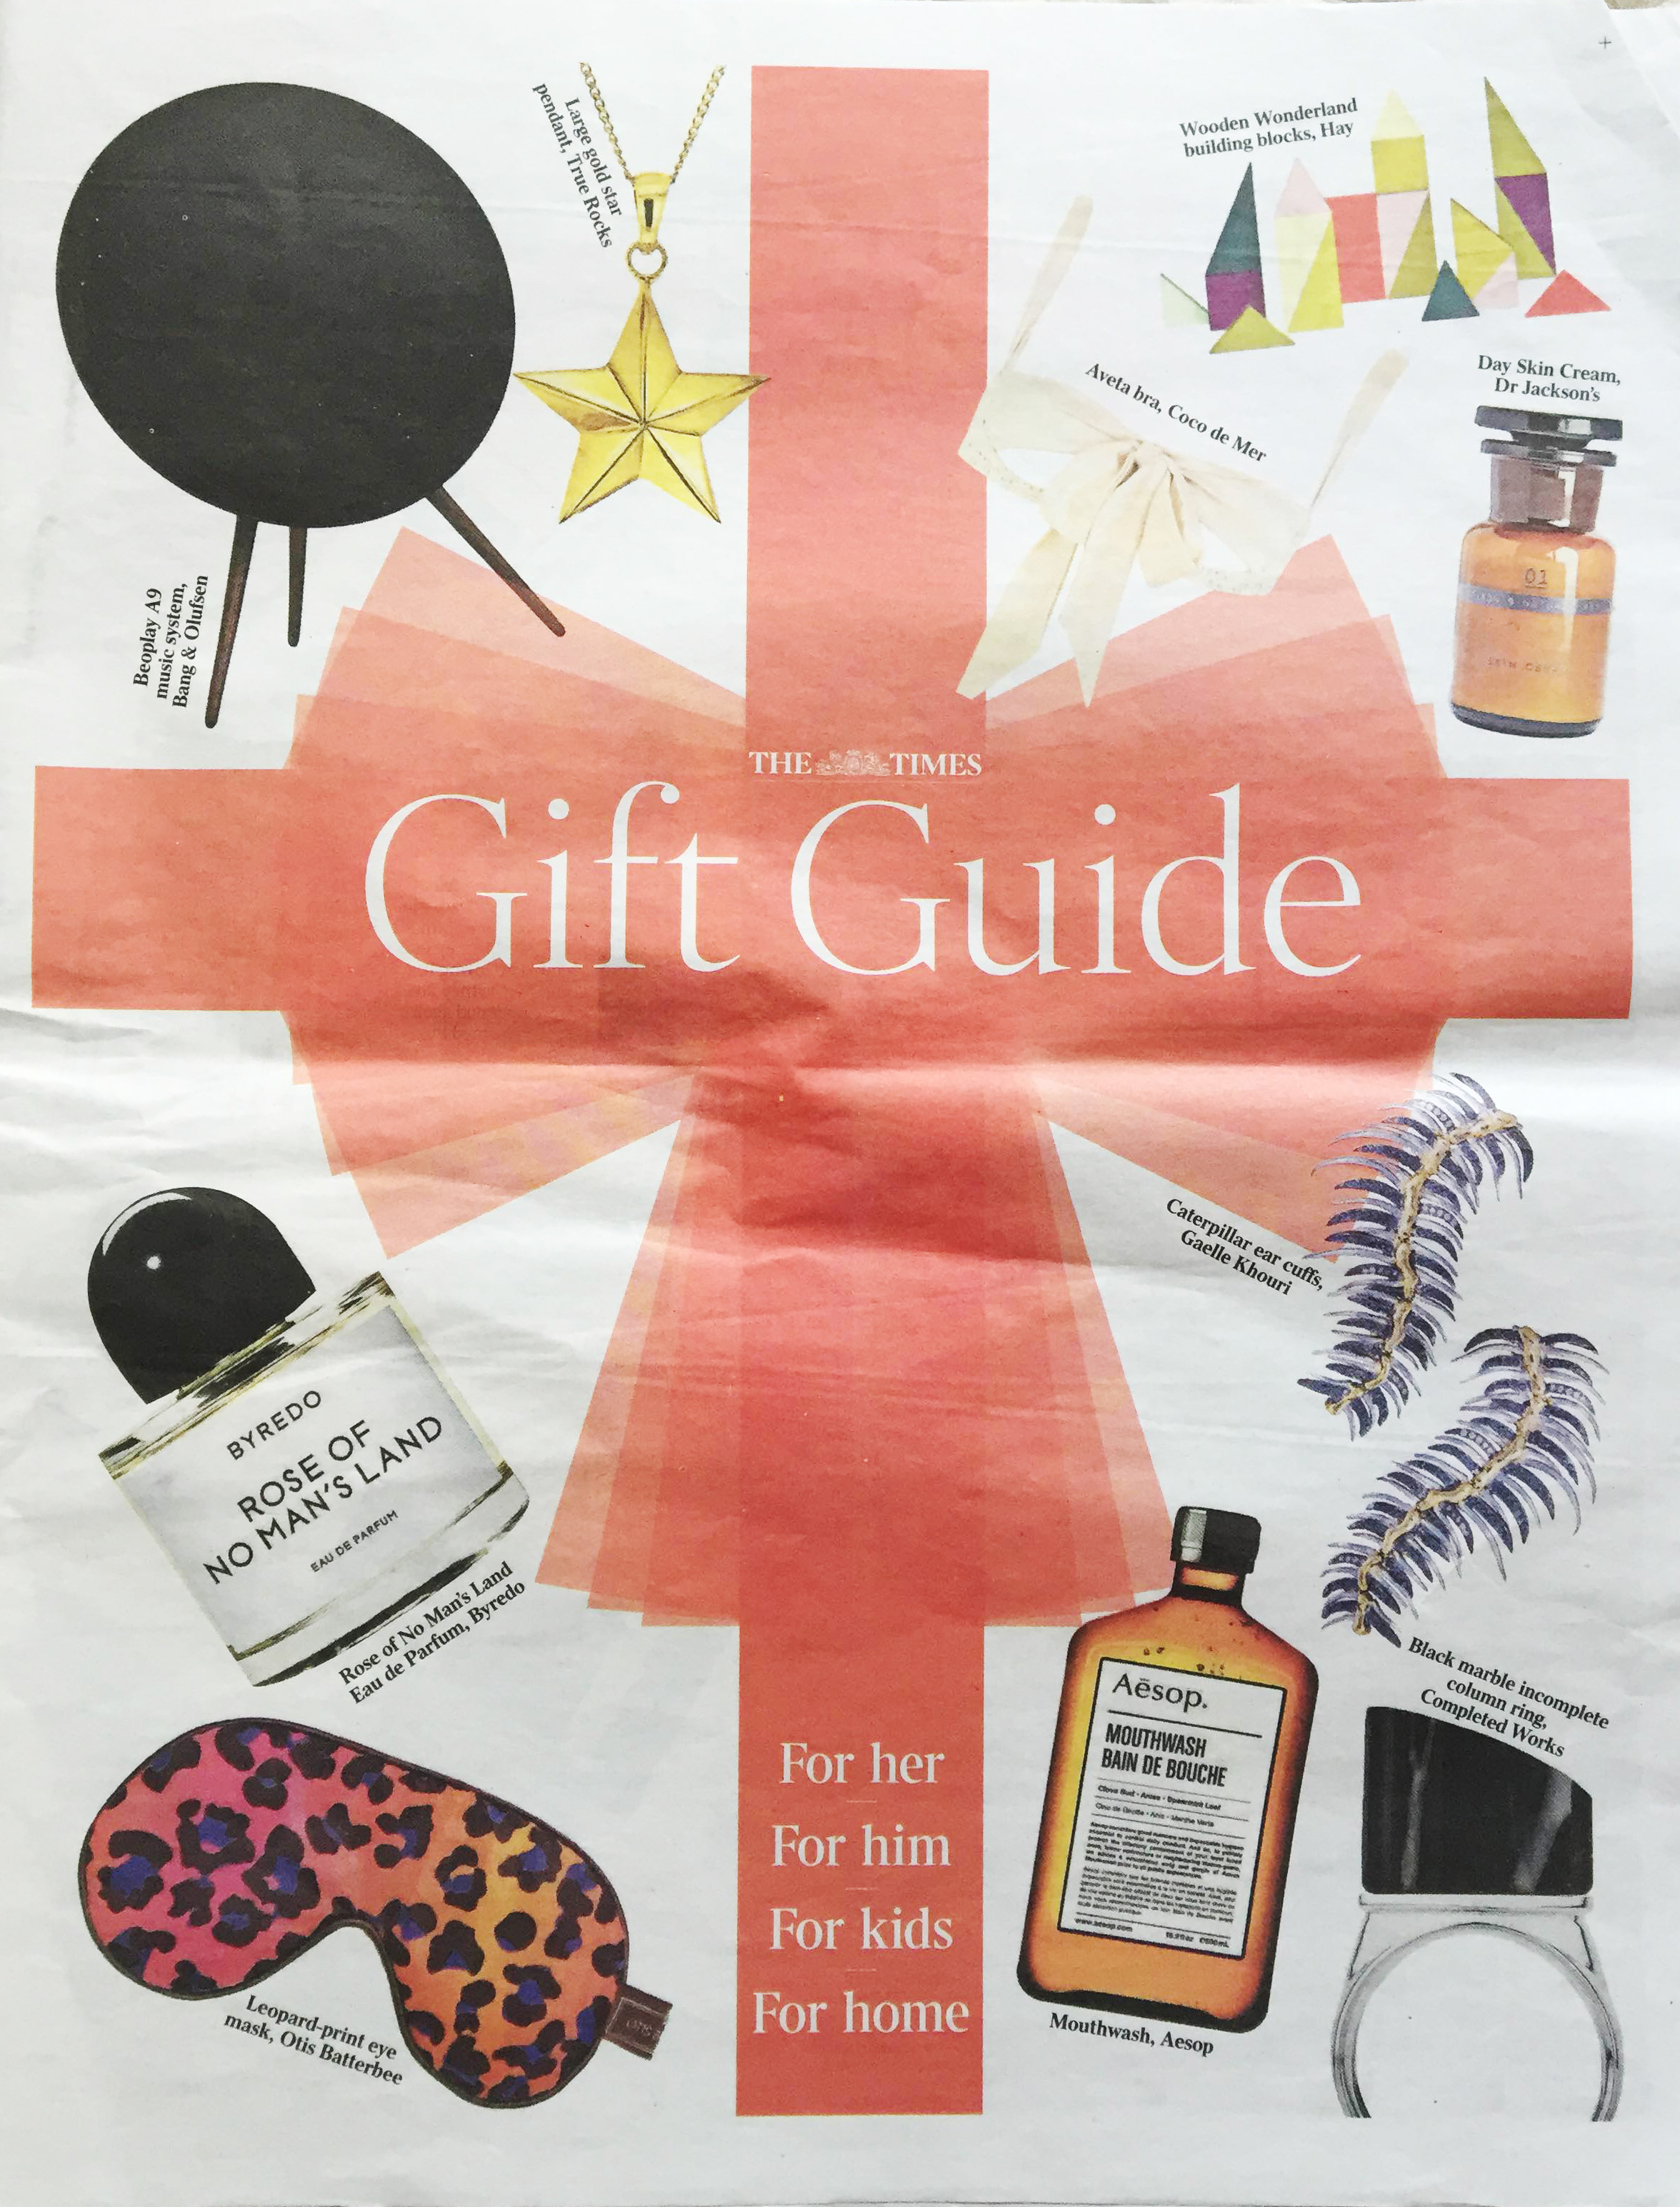 times gify guide cover.jpg